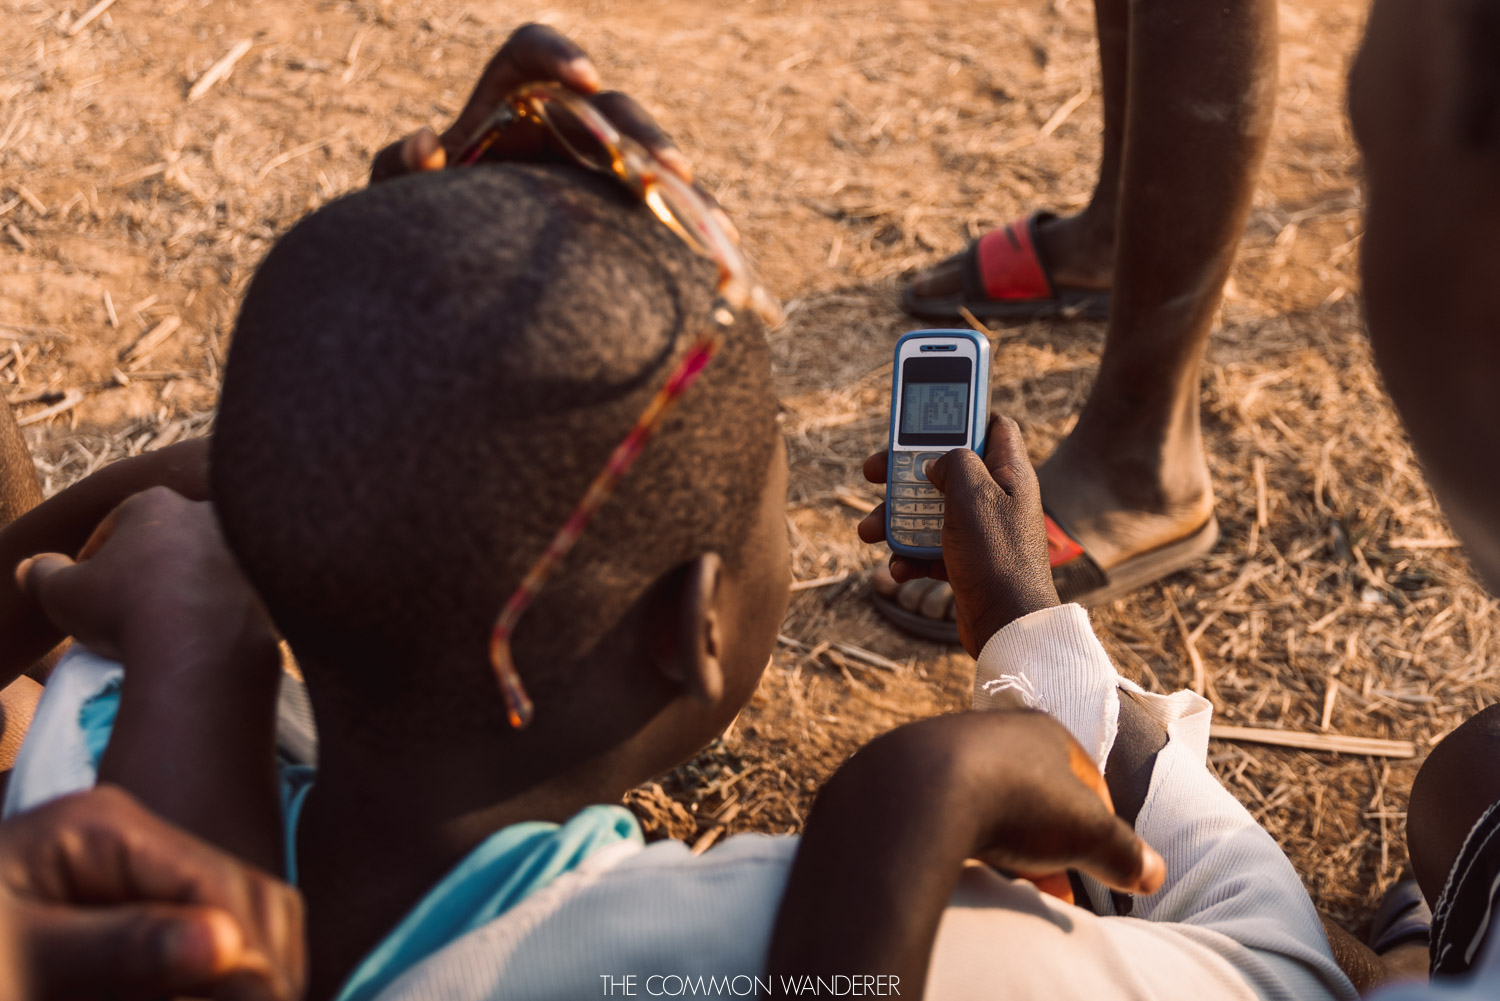 A young boy checks his phone in rural Malawi - Africa myths